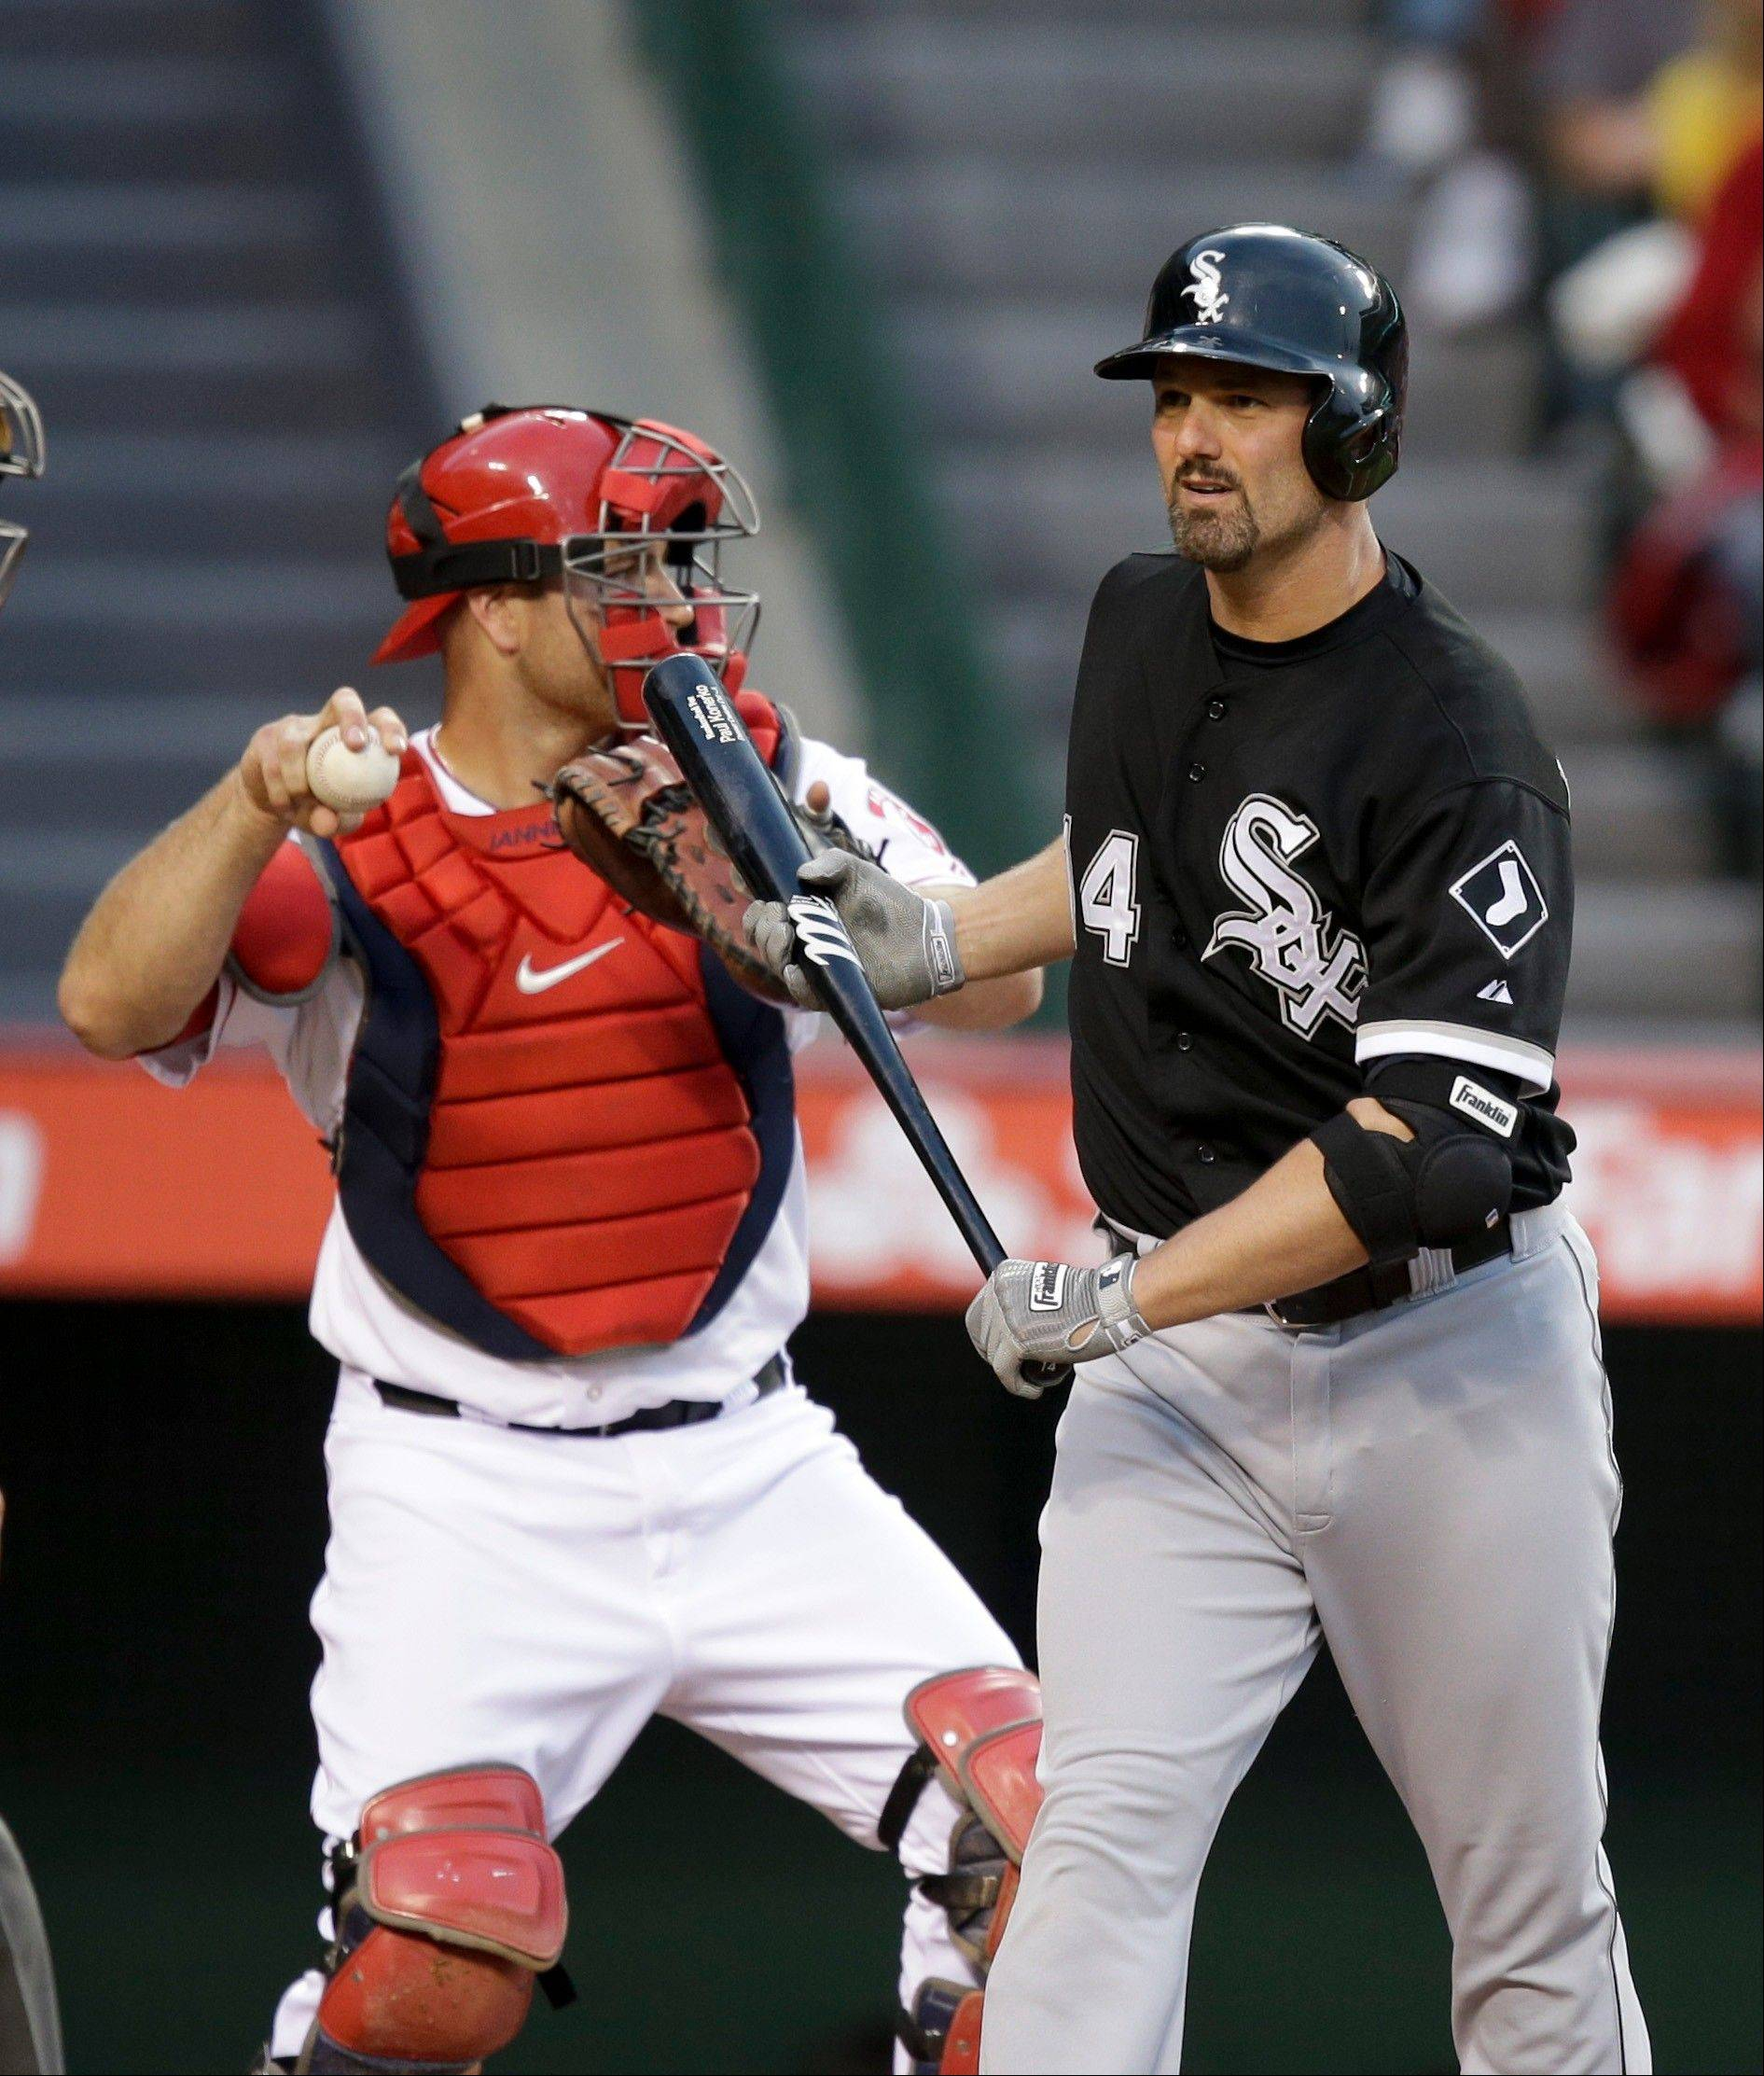 The White Sox' Paul Konerko reacts after striking out against the Angels during the just-completed weekend series.